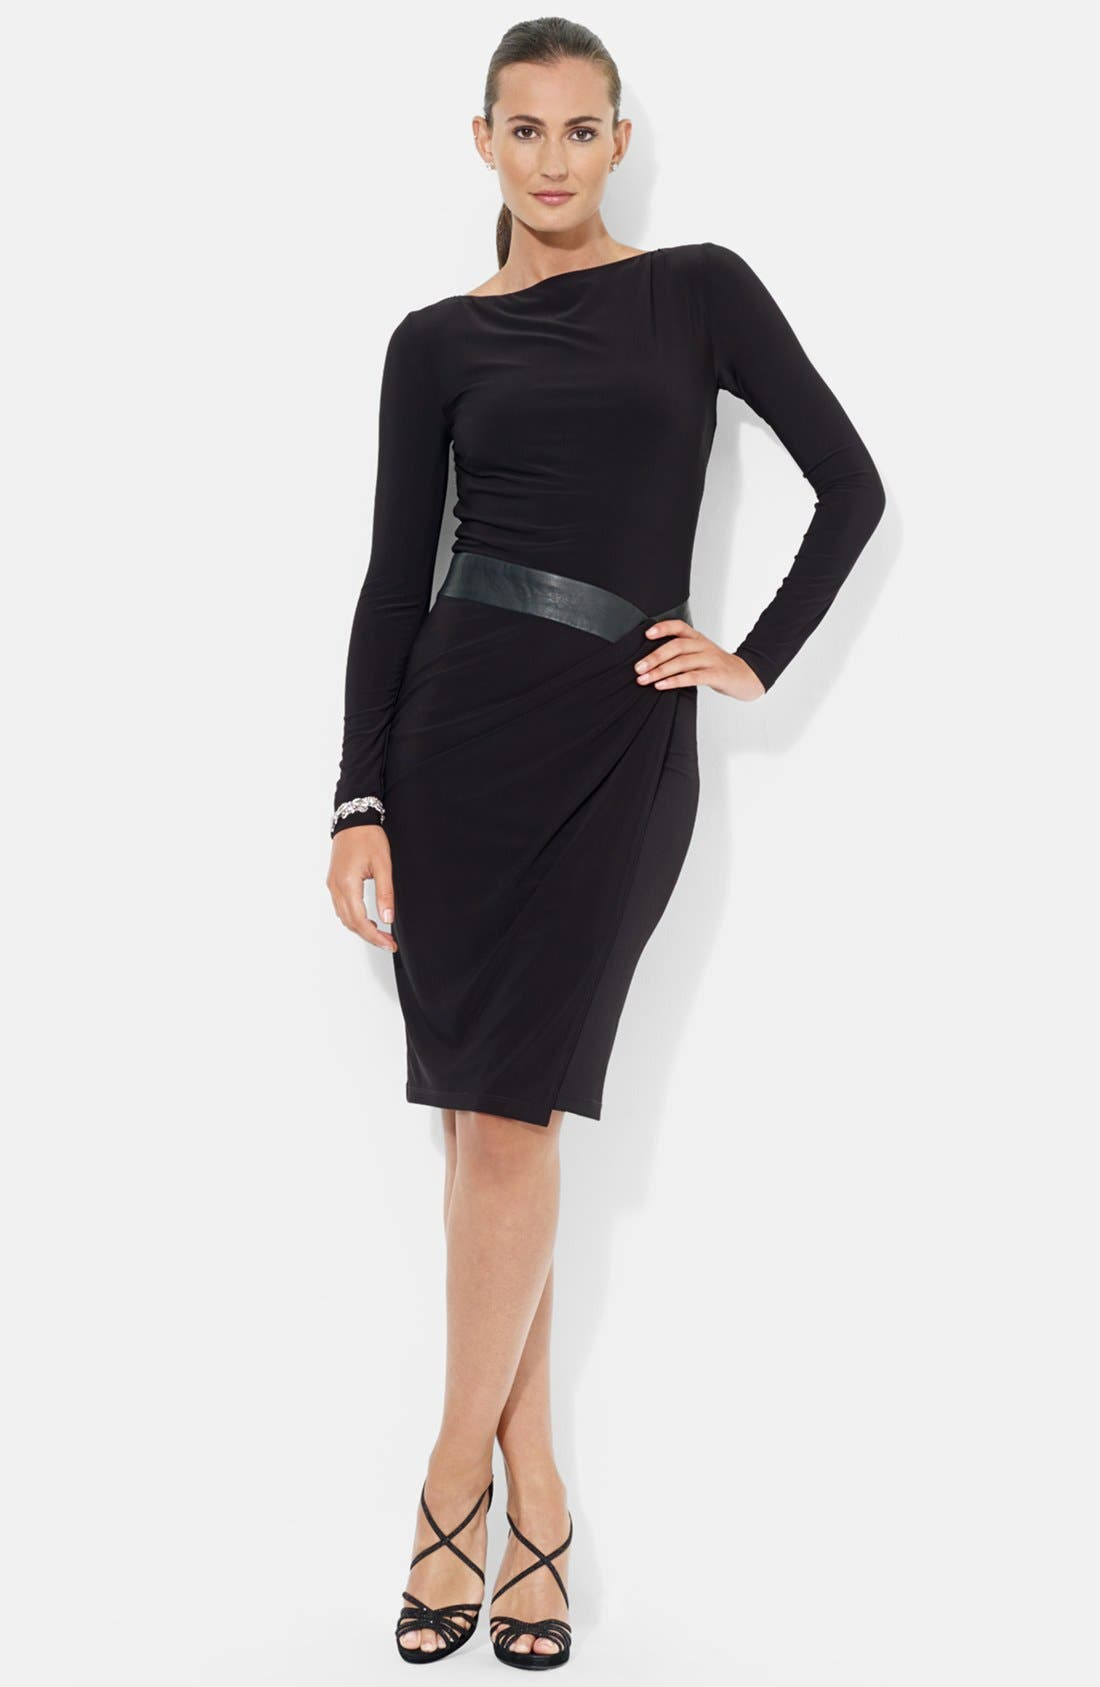 Alternate Image 1 Selected - Lauren Ralph Lauren Faux Leather Waistband Matte Jersey Dress